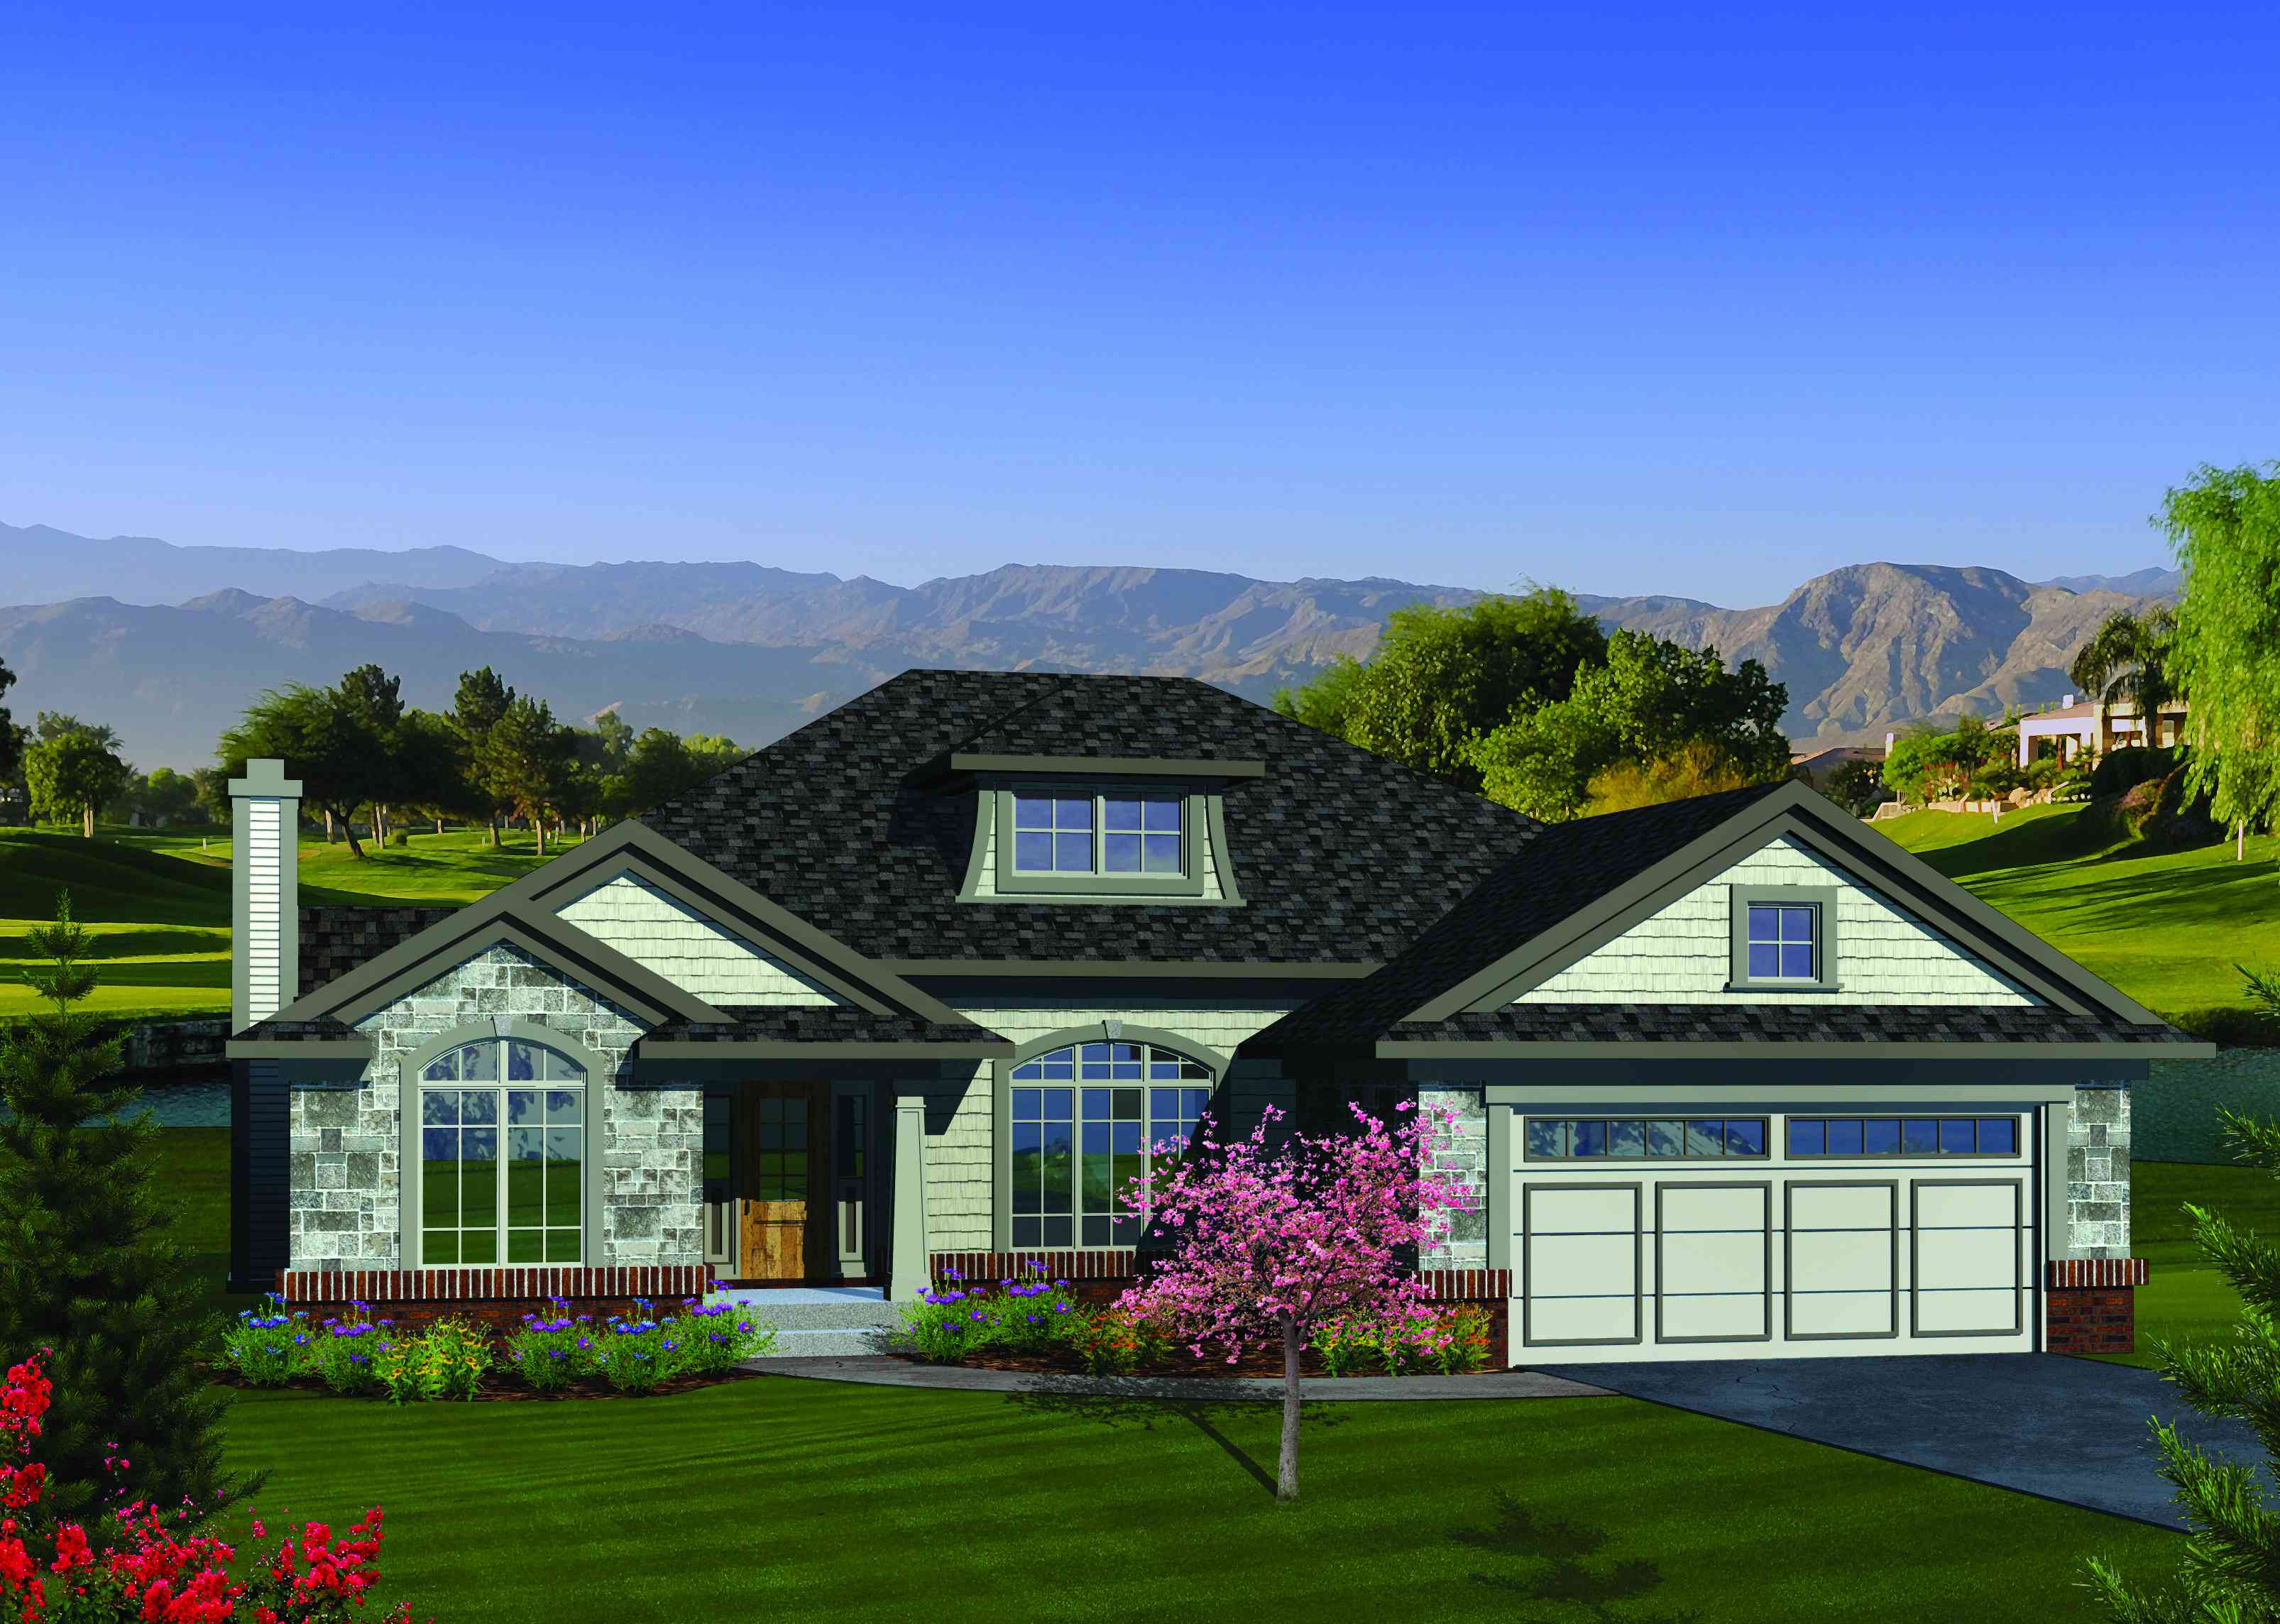 Open concept ranch home plan 89845ah 1st floor master for Architecturaldesigns com house plan 56364sm asp